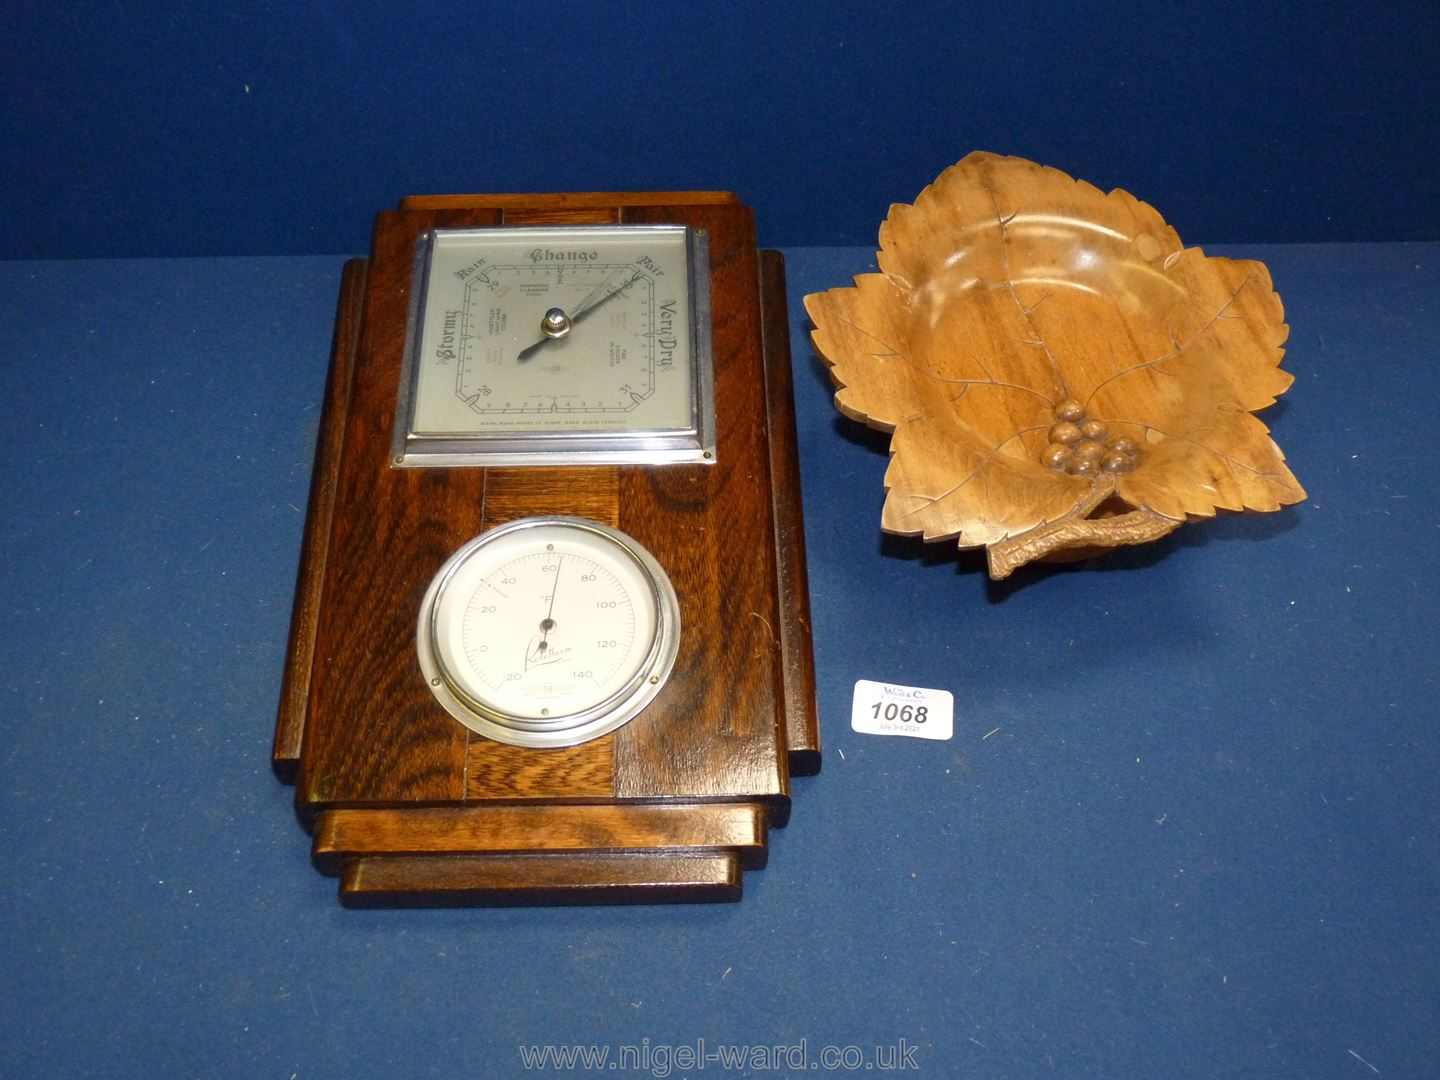 A wooden framed wall barometer/thermometer and a treen musical sweet plate.